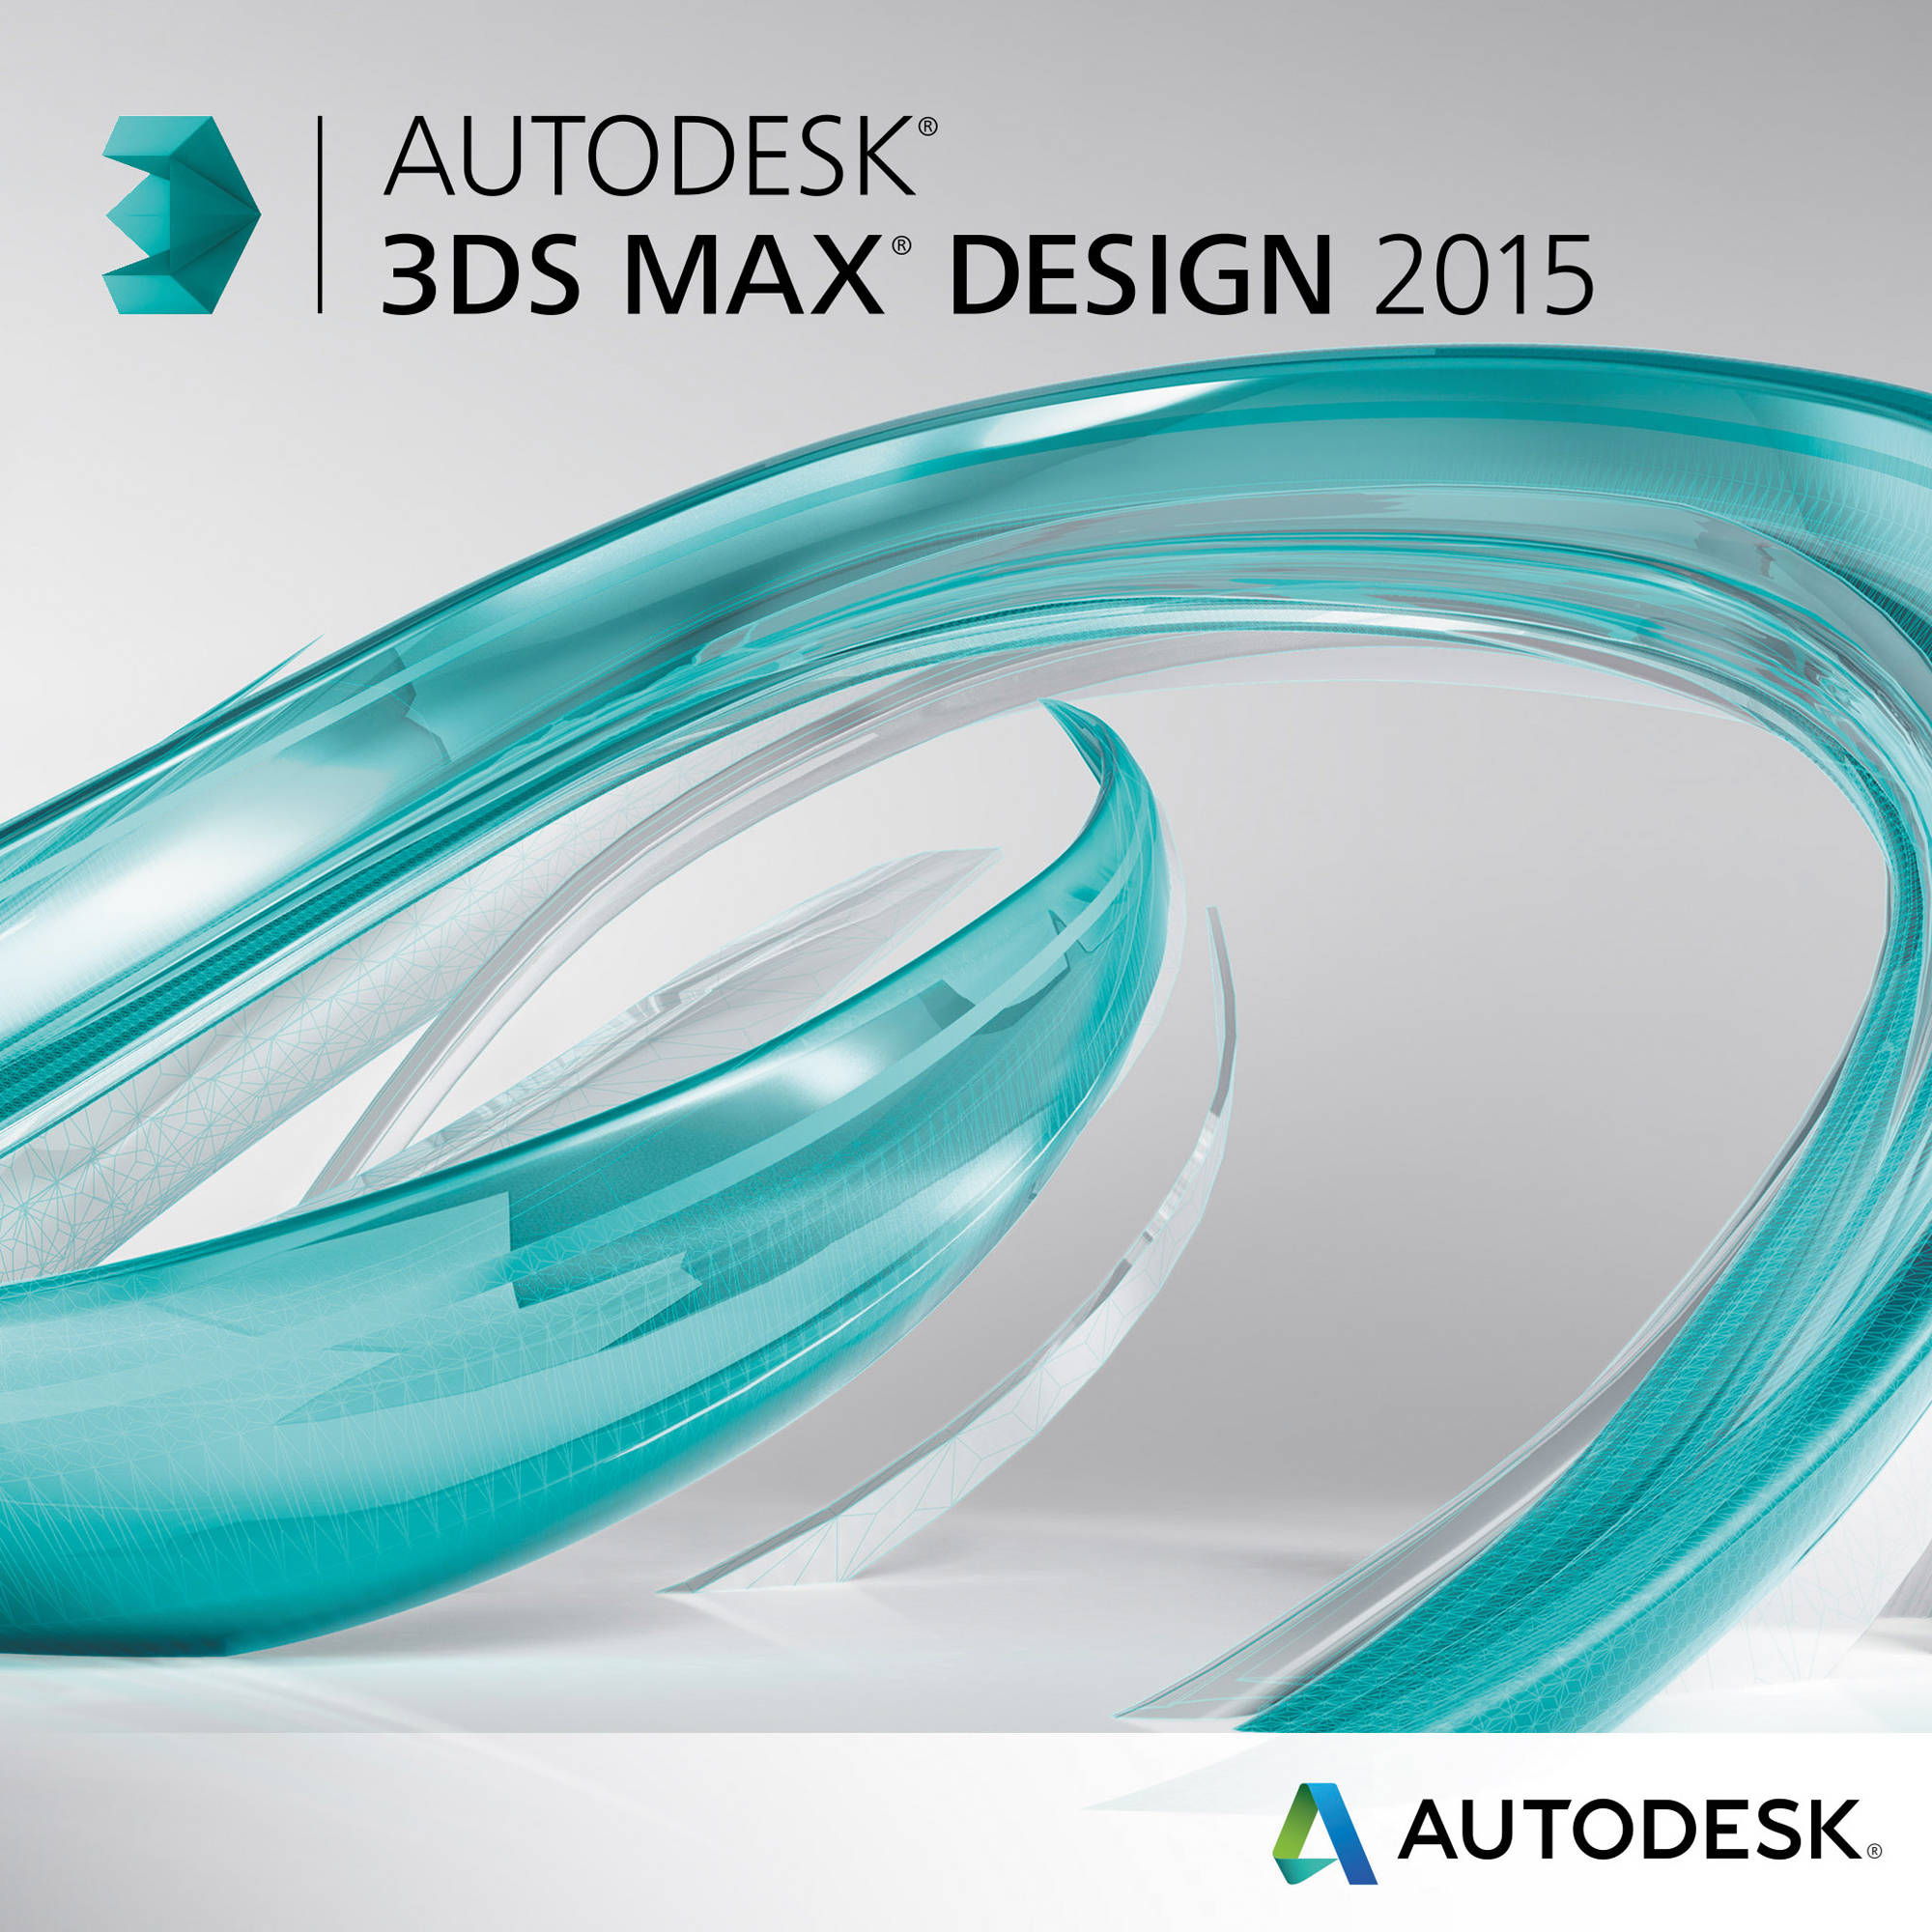 Autodesk 3ds max design 2015 download 495g1 wwr111 1001 b h for 3ds max design